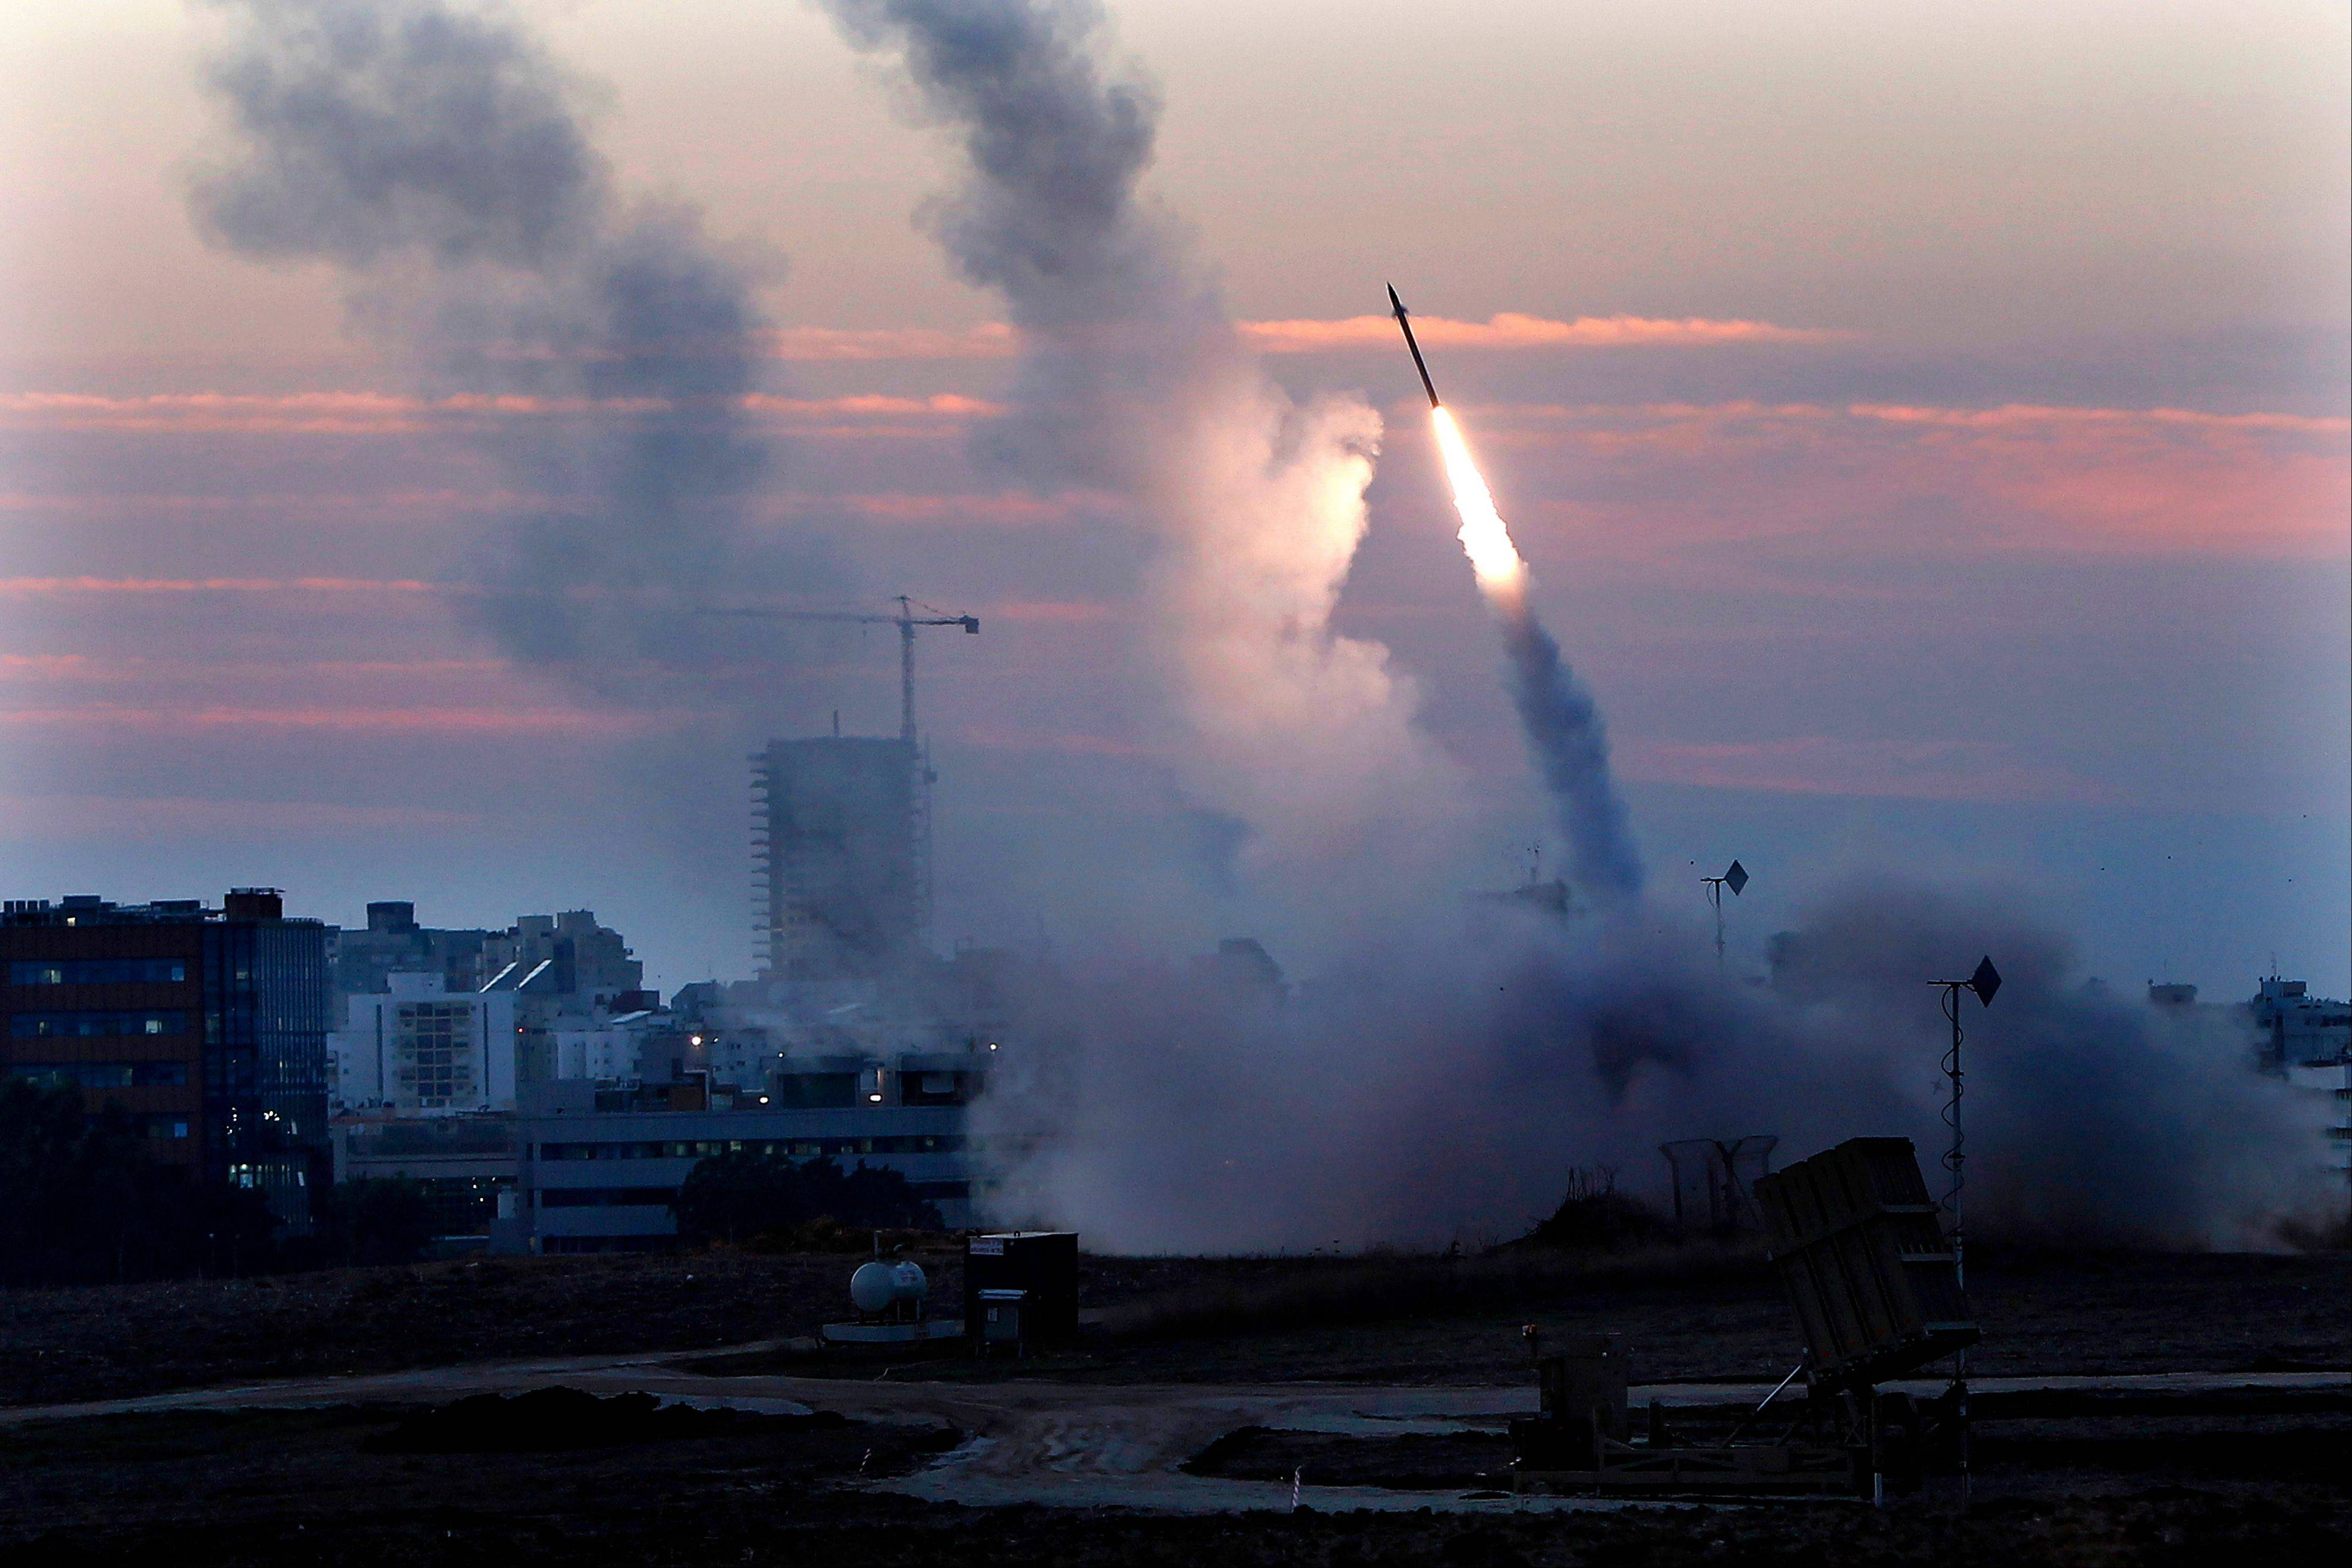 The Iron Dome defense system fires to interecpt incoming missiles from Gaza in the port town of Ashdod on Thursday. Israel�s prime minister Benjamin Netanyahu said Thursday that the army is prepared for a �significant widening� of its operation in the Gaza Strip.